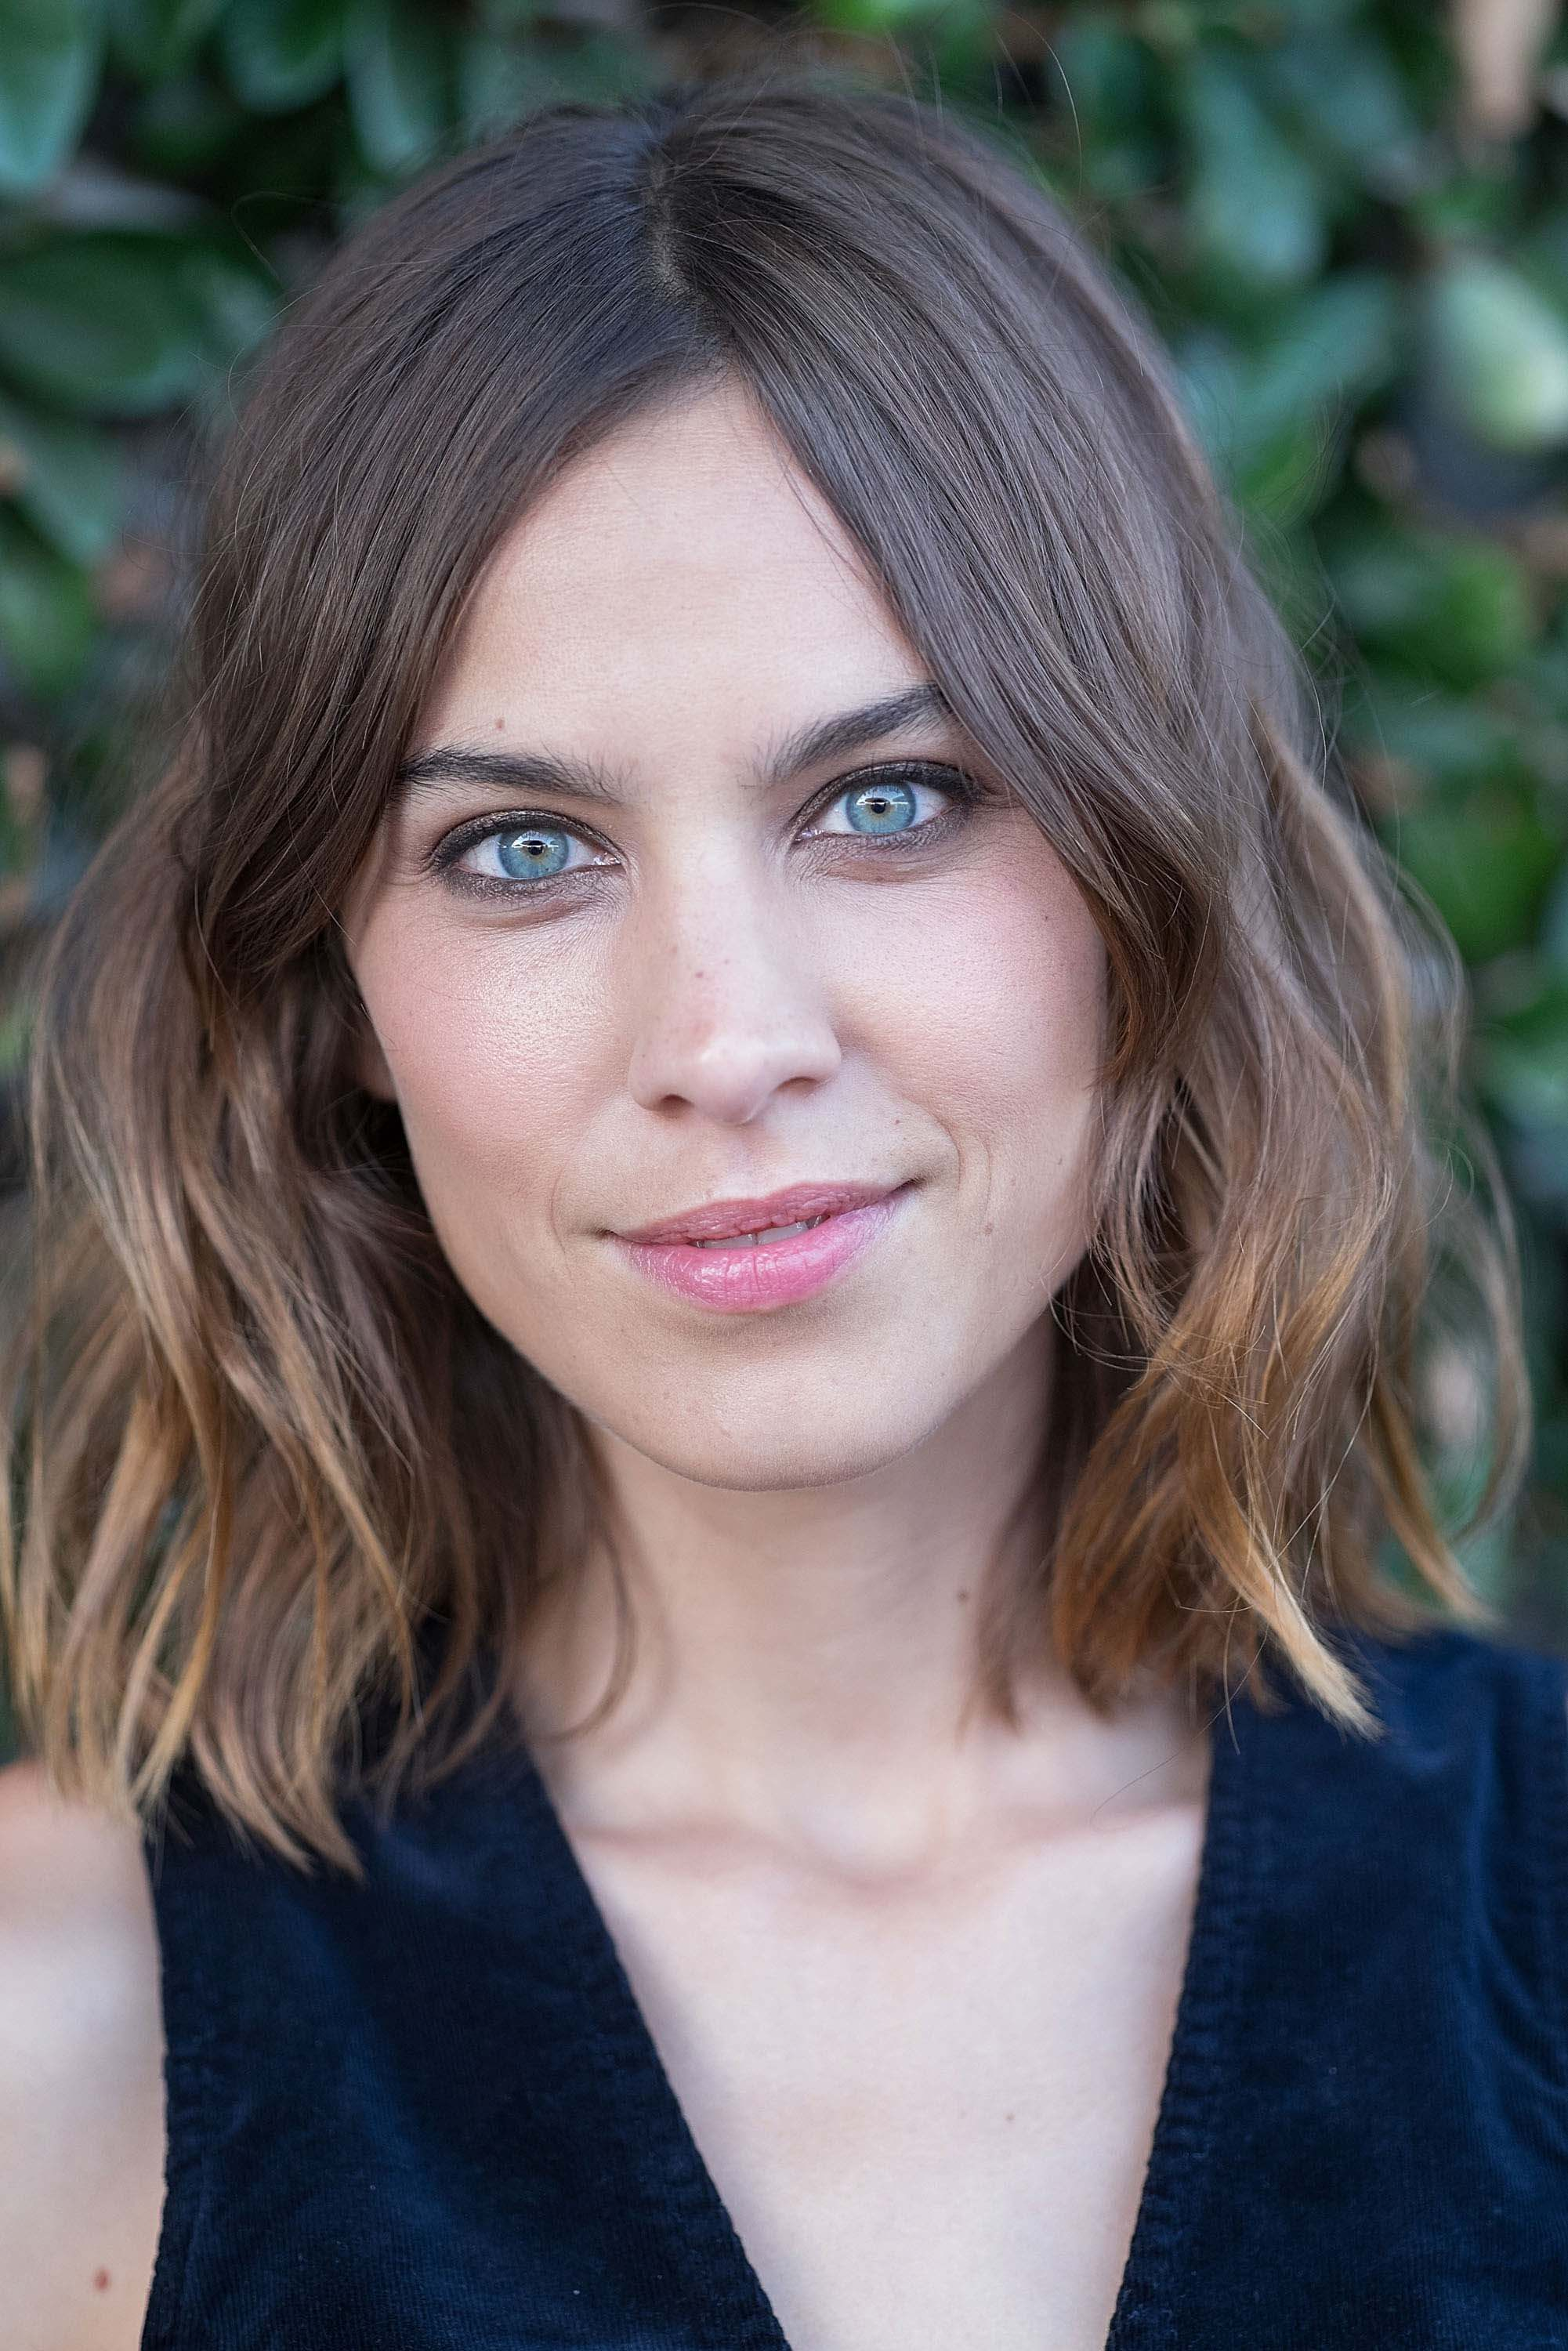 Alexa chung short brown ombre hair